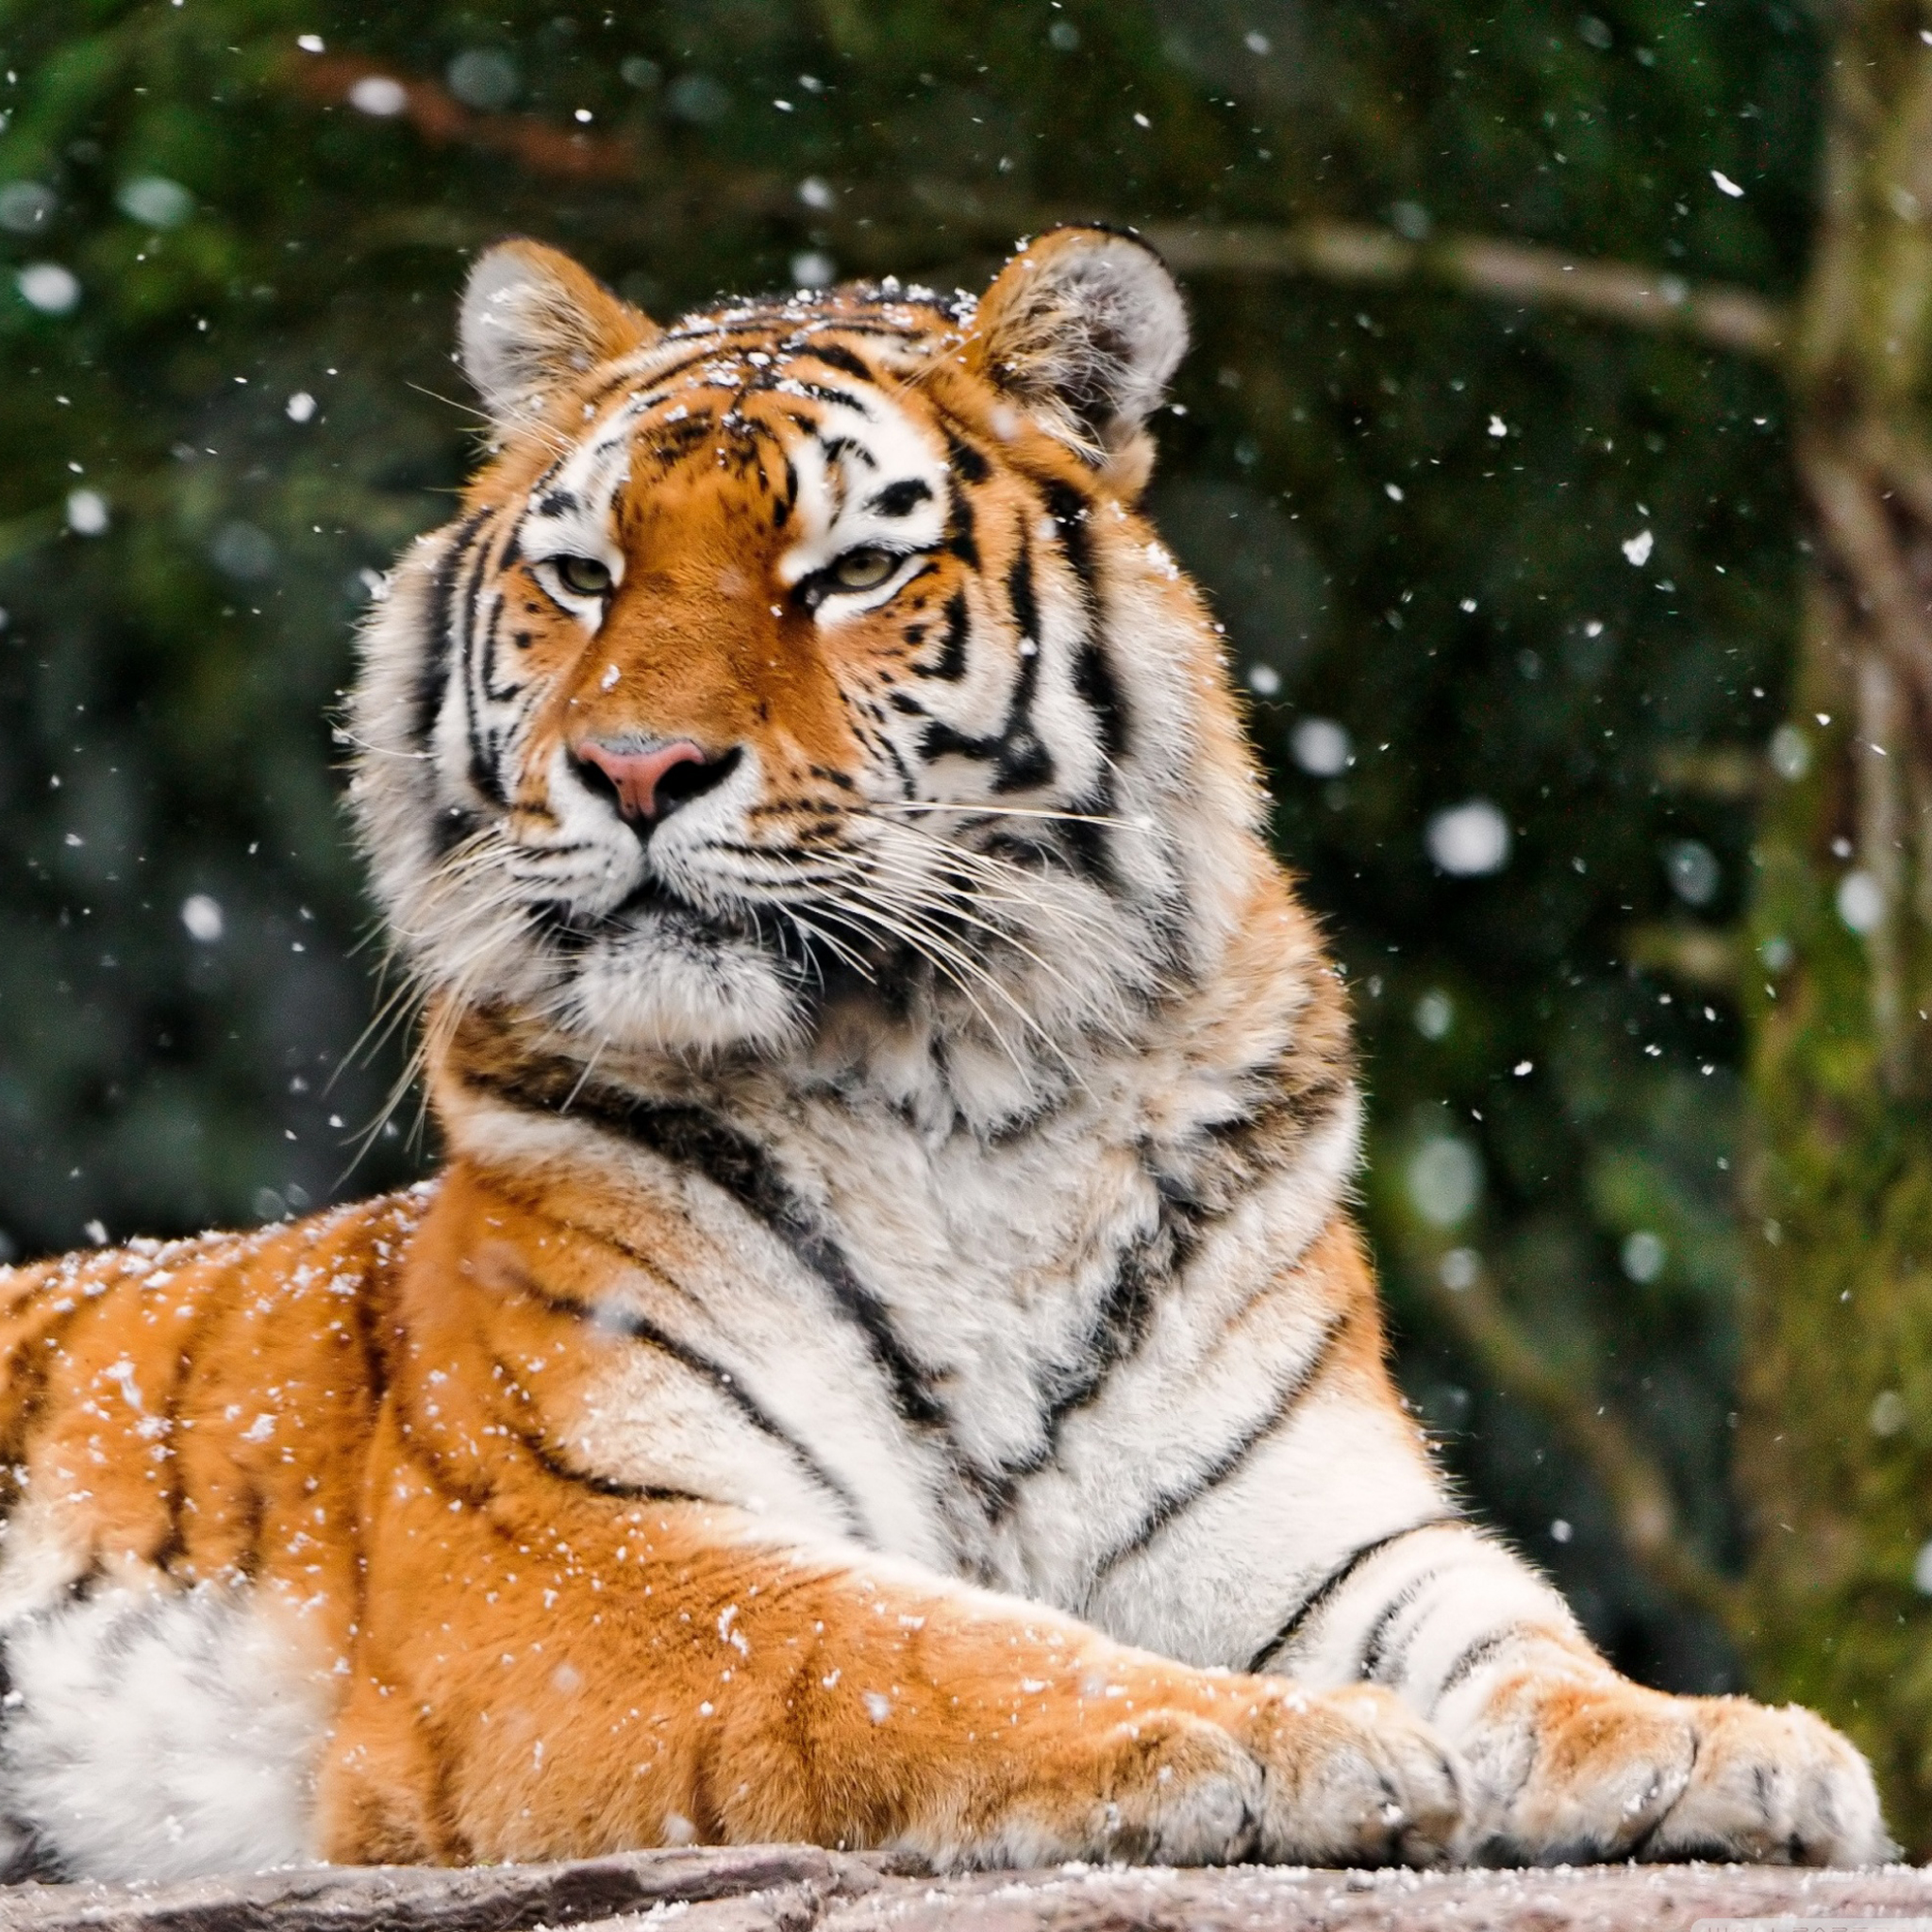 Tiger-in-the-Snow-3Wallpapers-iPad